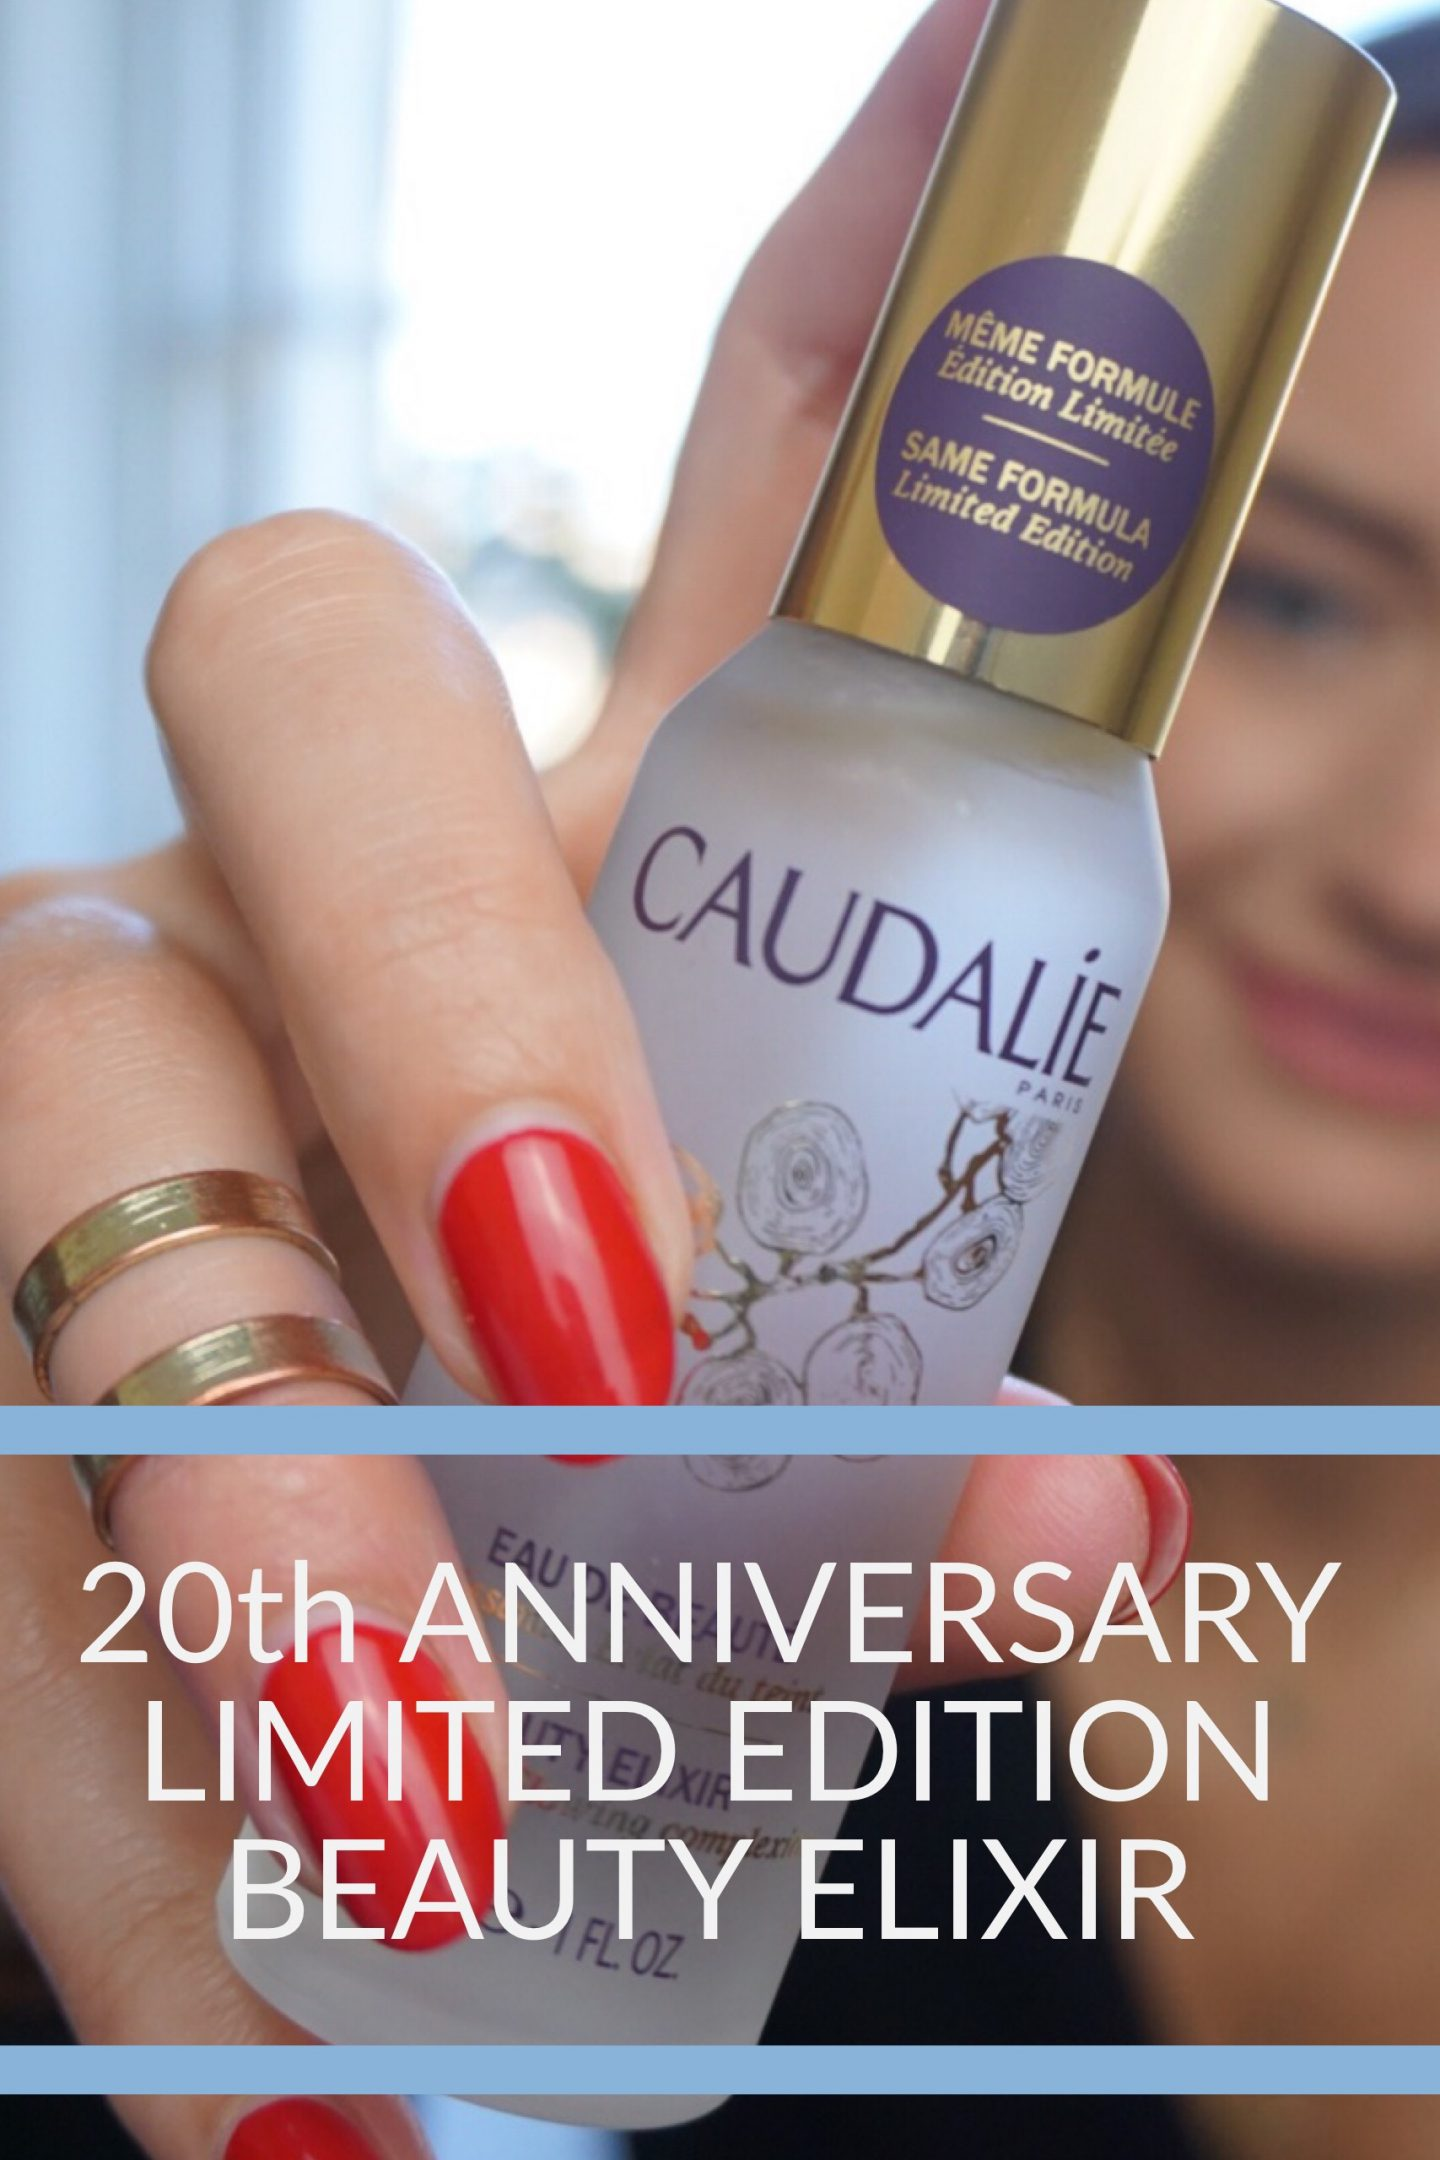 Caudalie Beauty Elixir Celebrates 20 years